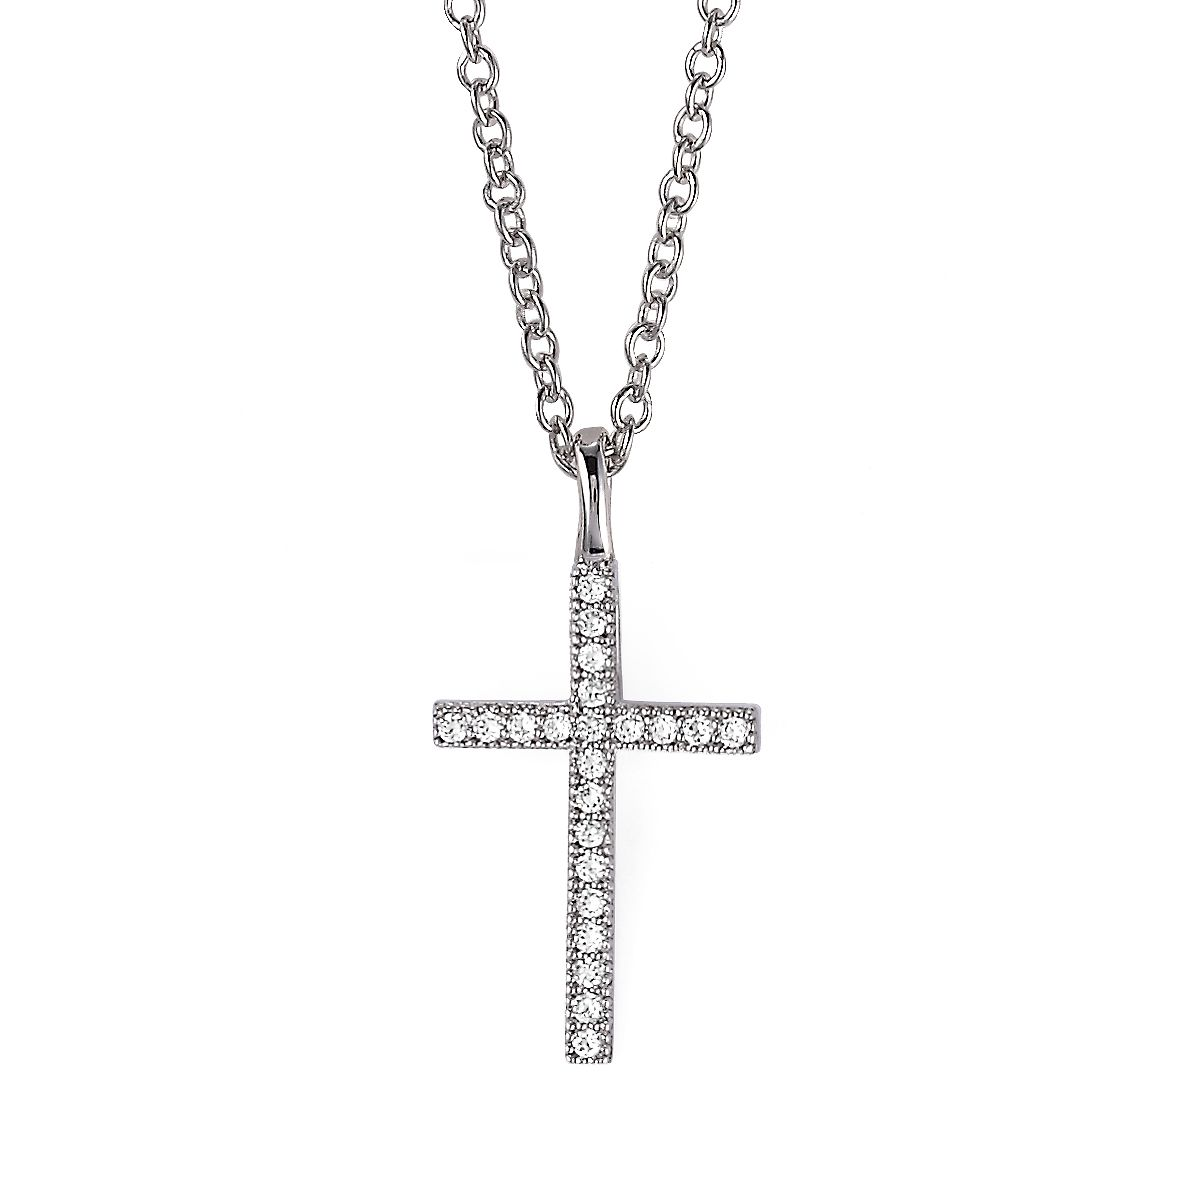 CRISLU CUBIC ZIRCONIA CLASSIC CROSS NECKLACE available at Ear Abstracts Boutique 714.996.3505 *We ship!*